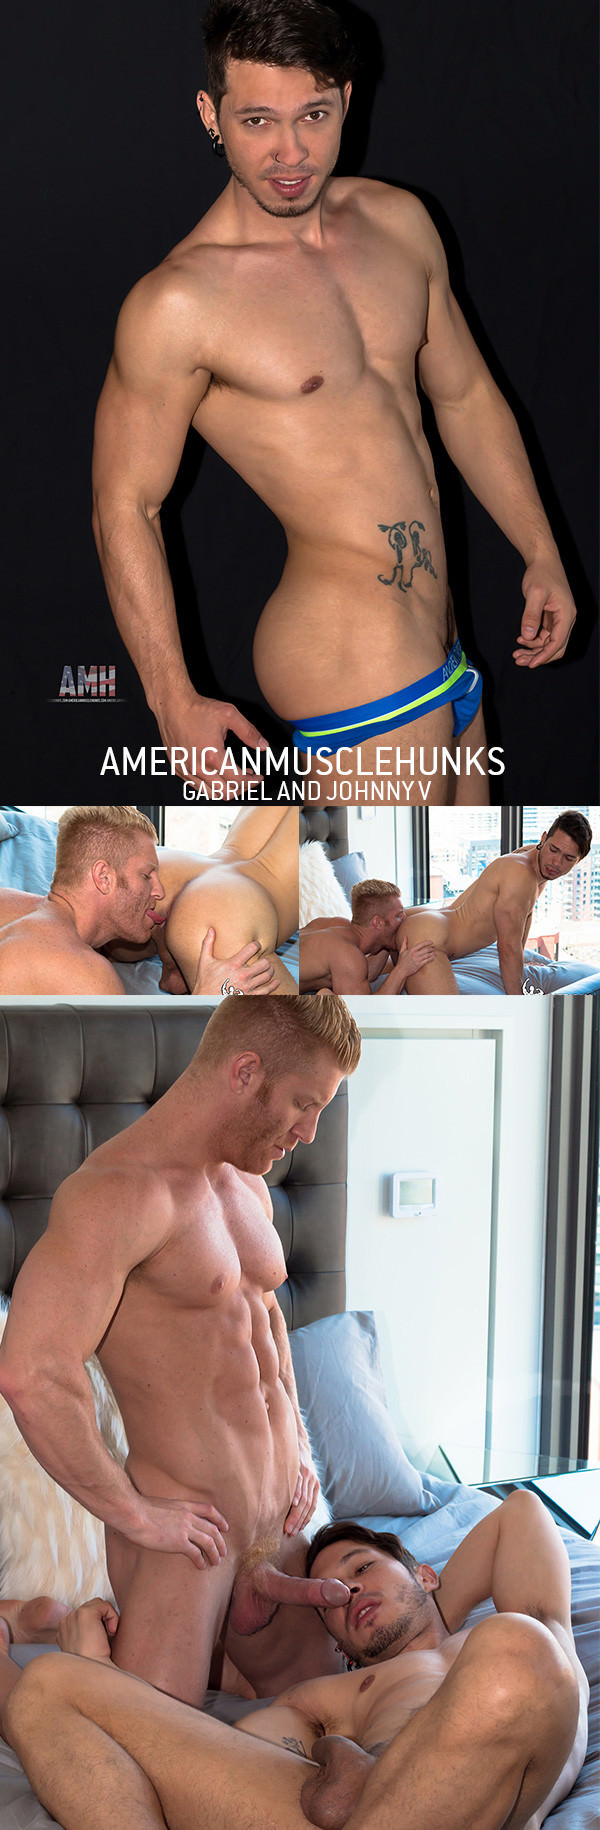 AmericanMuscleHunks Johnny V Gabriel Alanzo